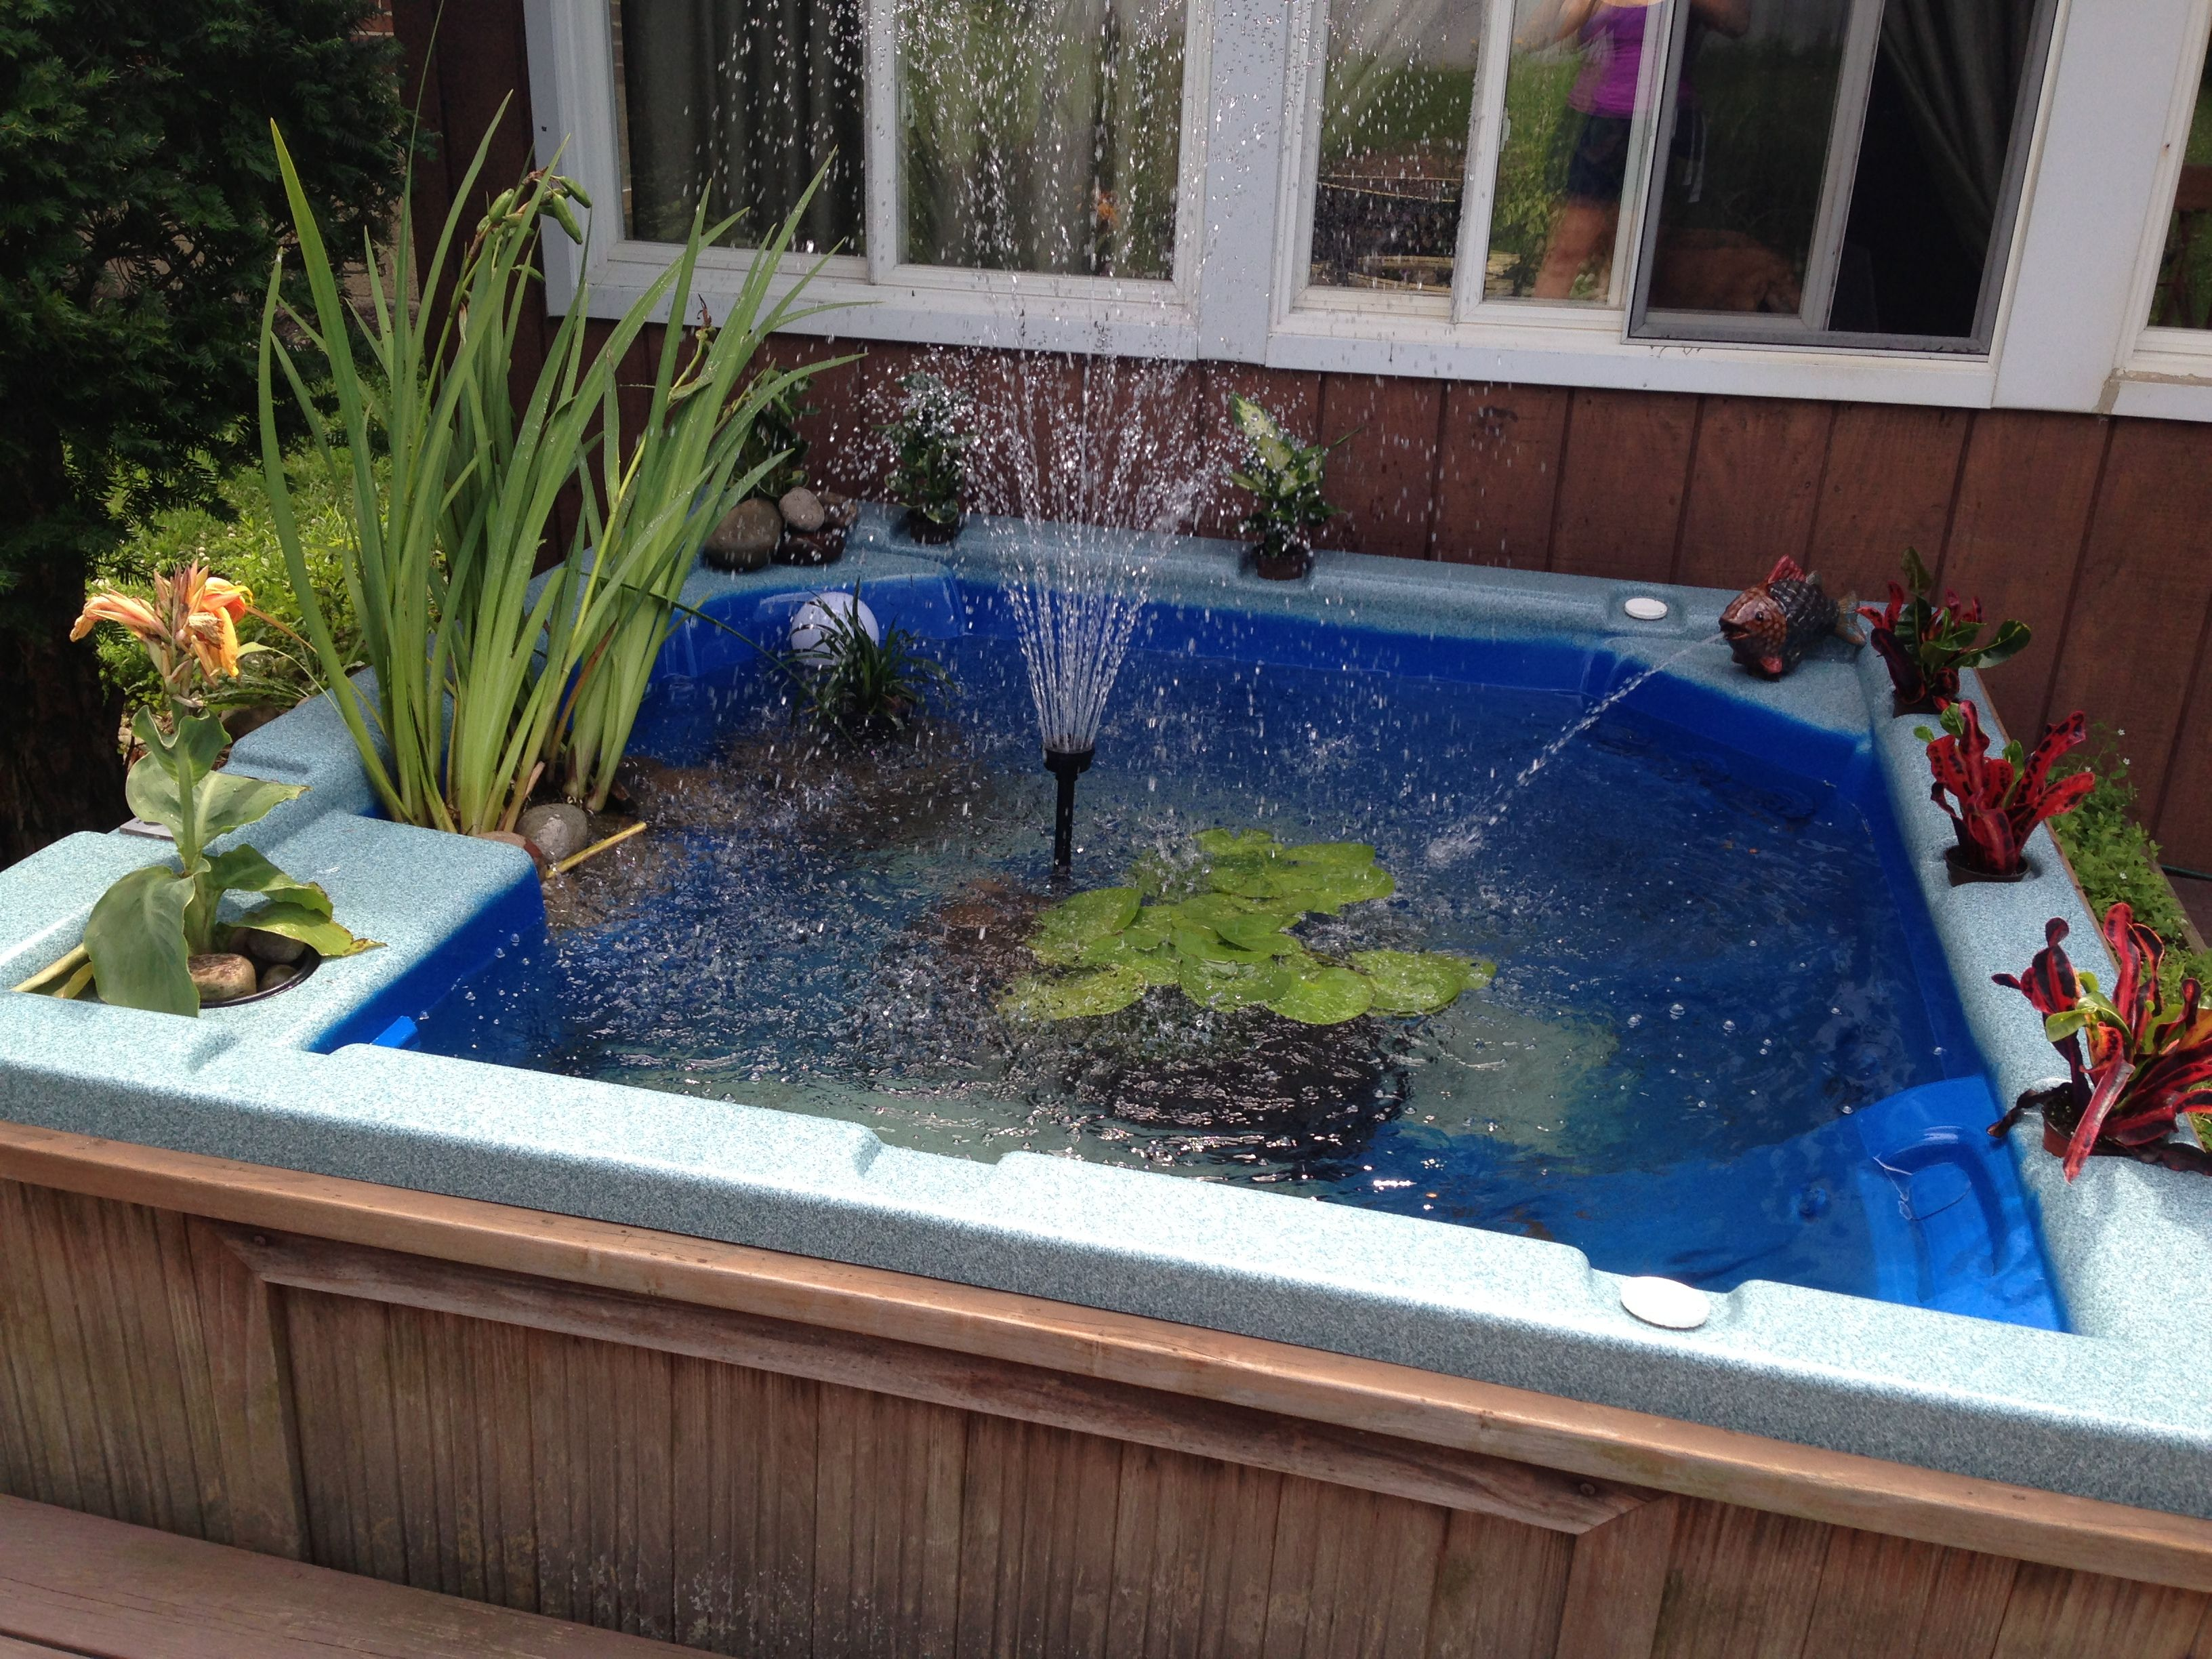 We repurposed our hot tub too expensive to fix too for Koi pond tubs